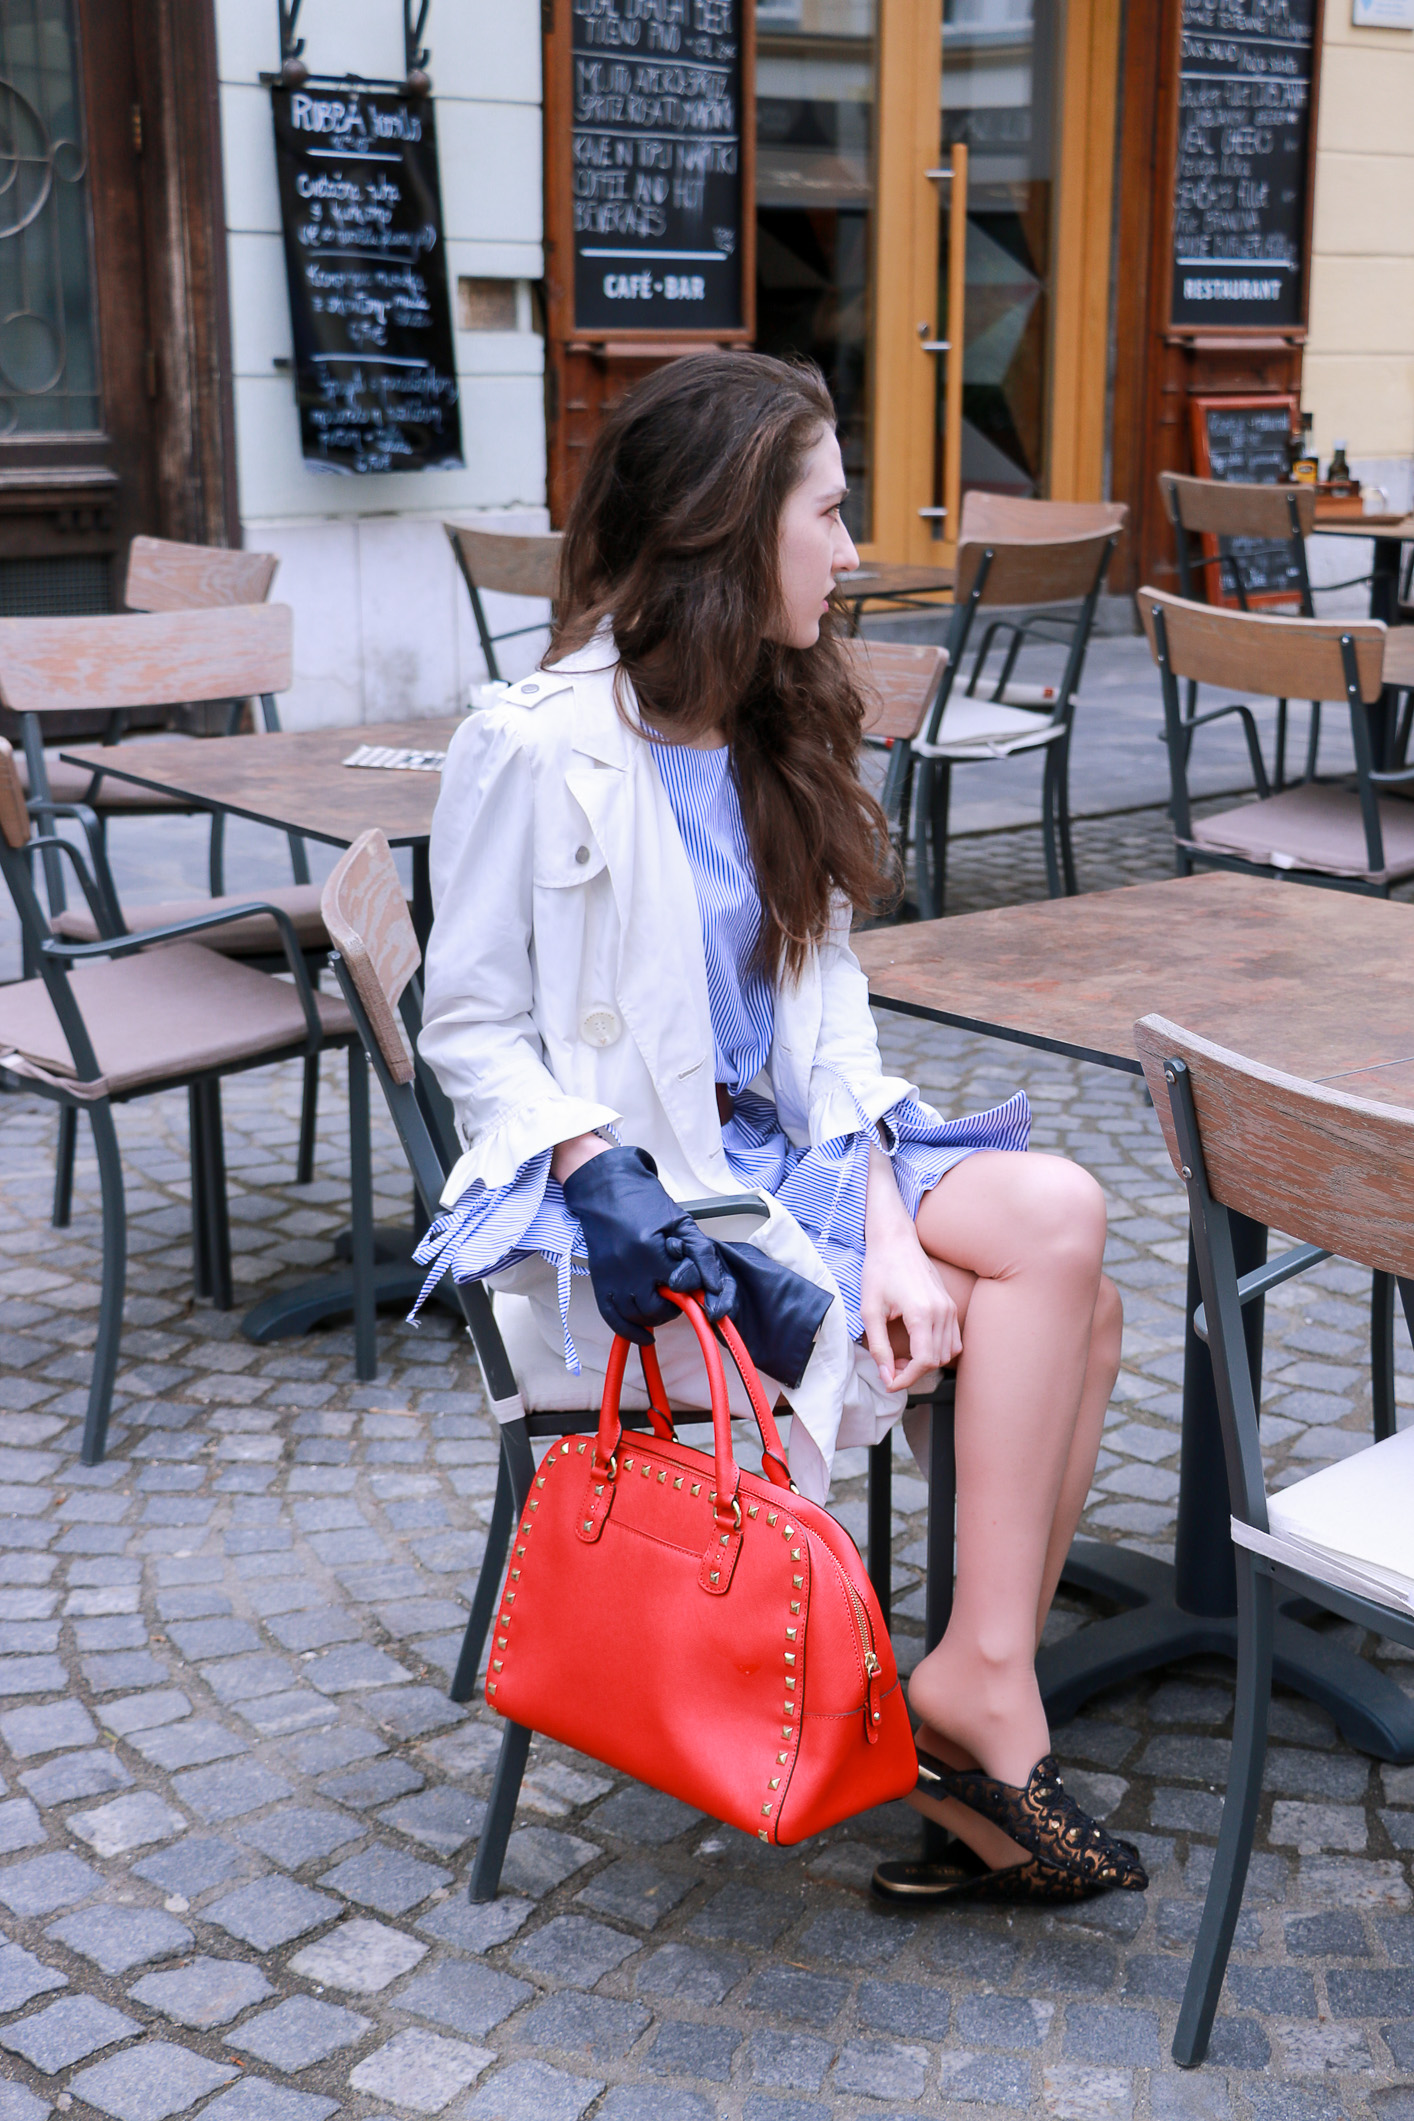 Fashion blogger Veronika Lipar of Brunette From Wall Street her fashionable outfit for lunch with girlfriends